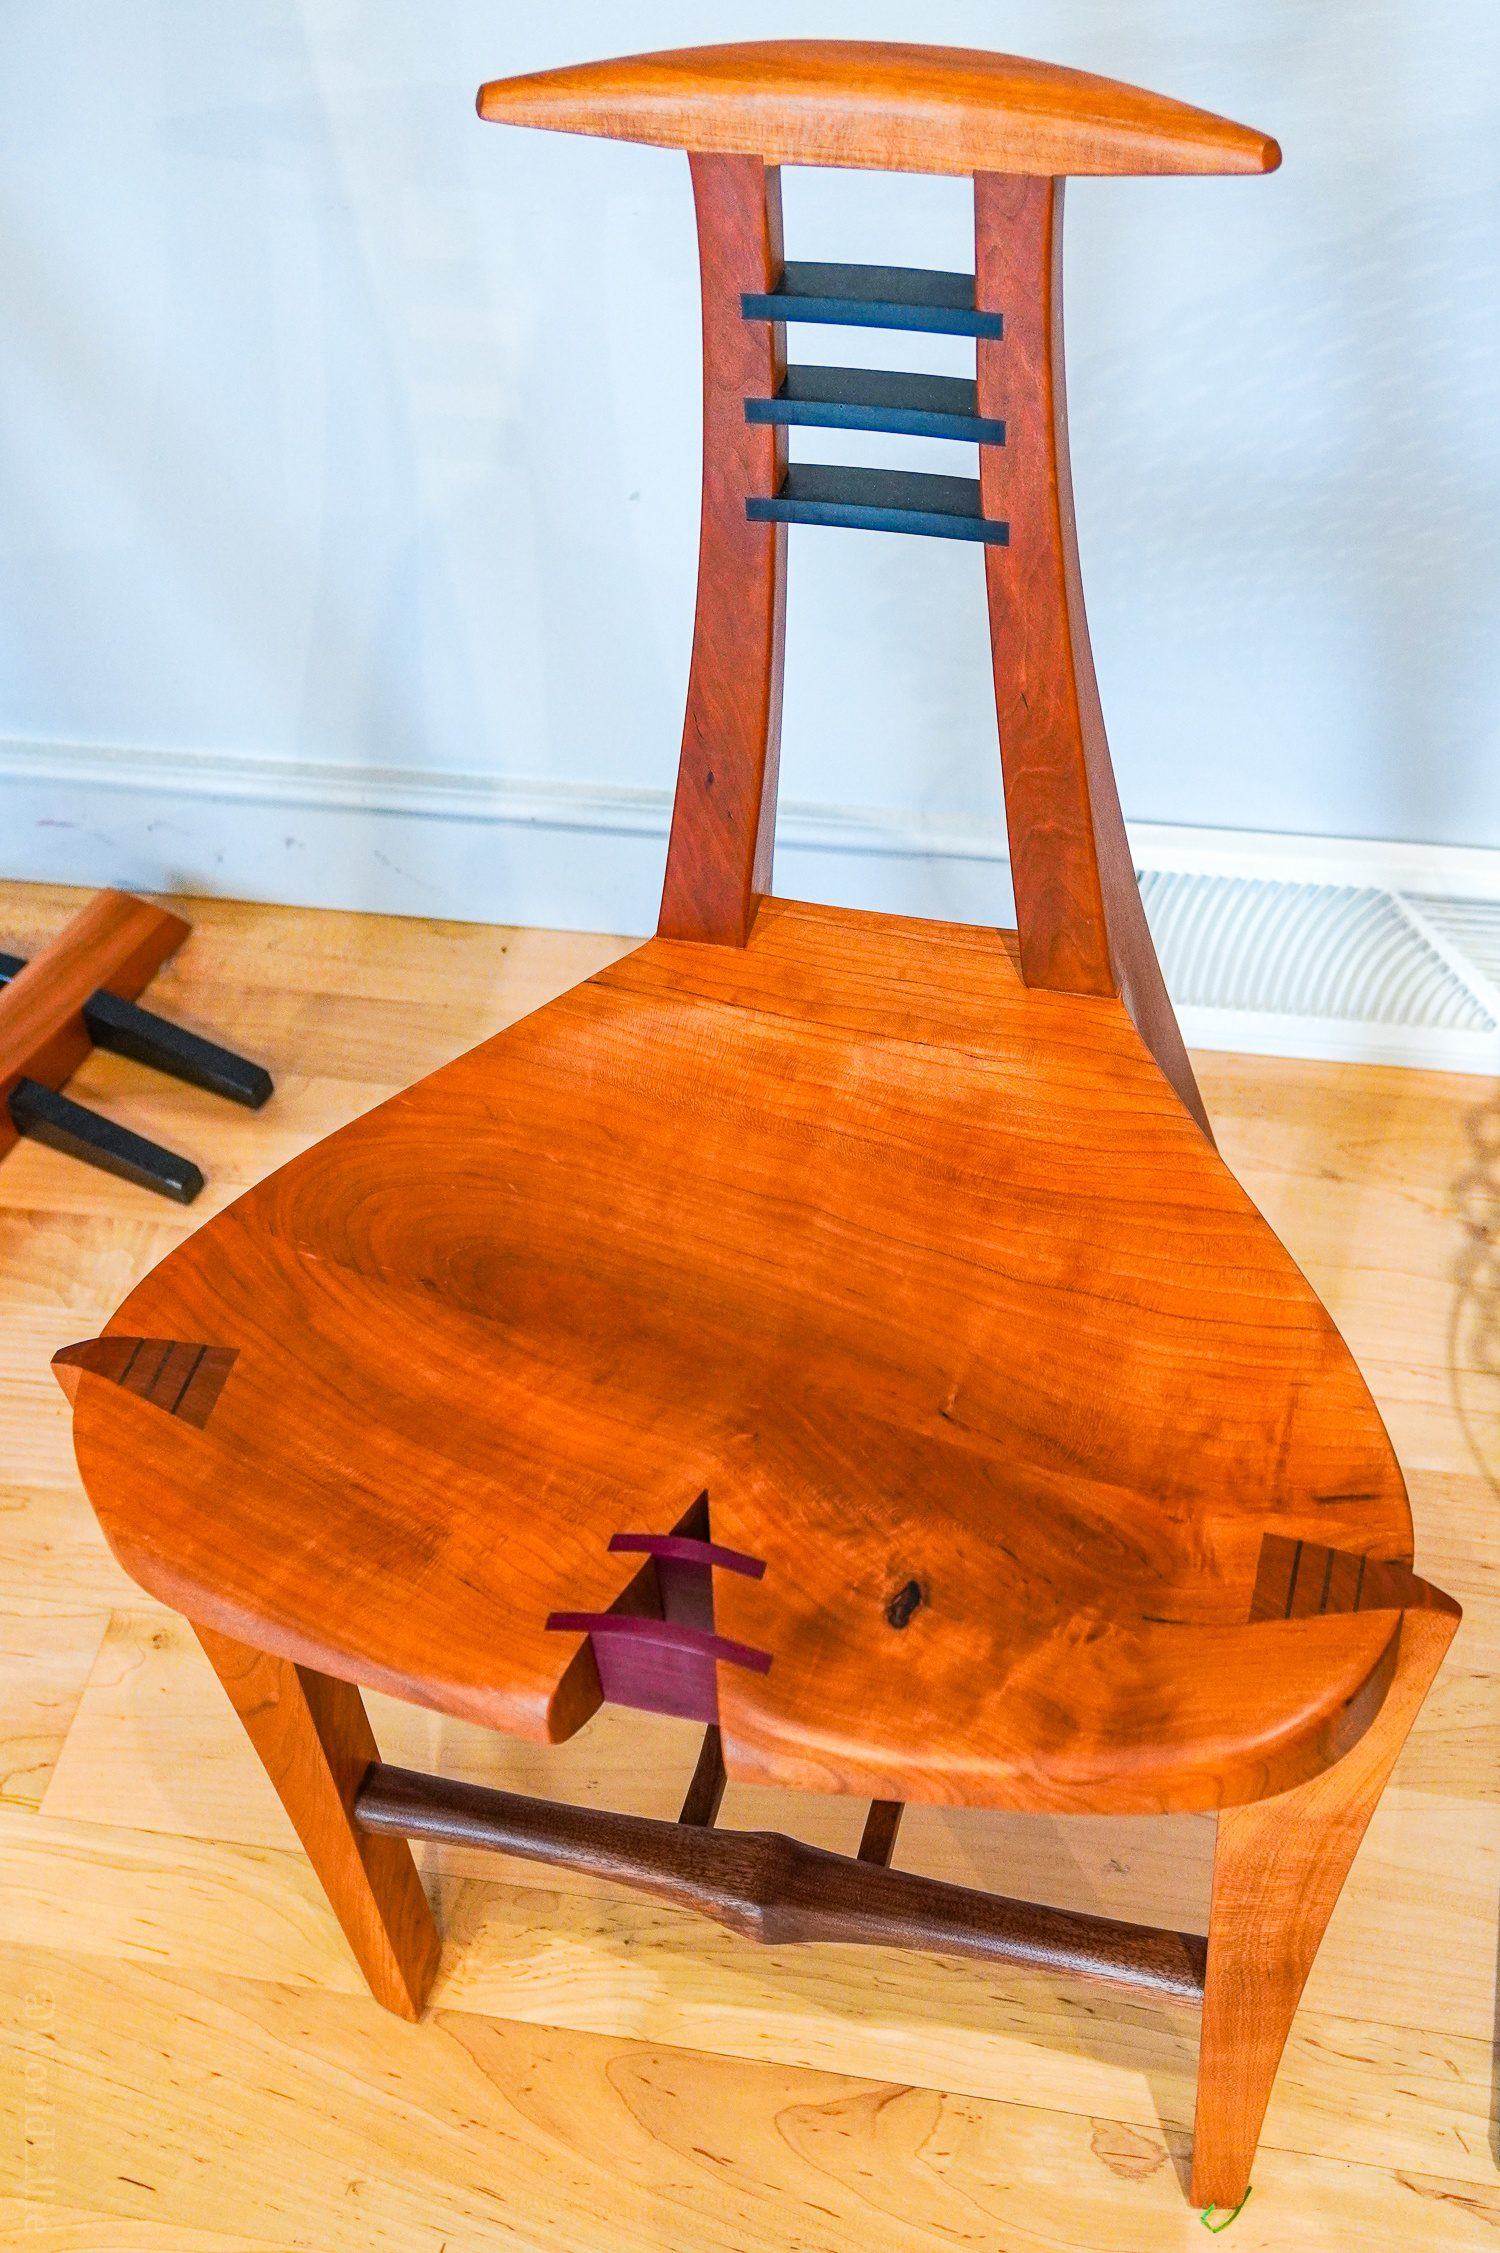 Perfect, hand-crafted wooden furniture.